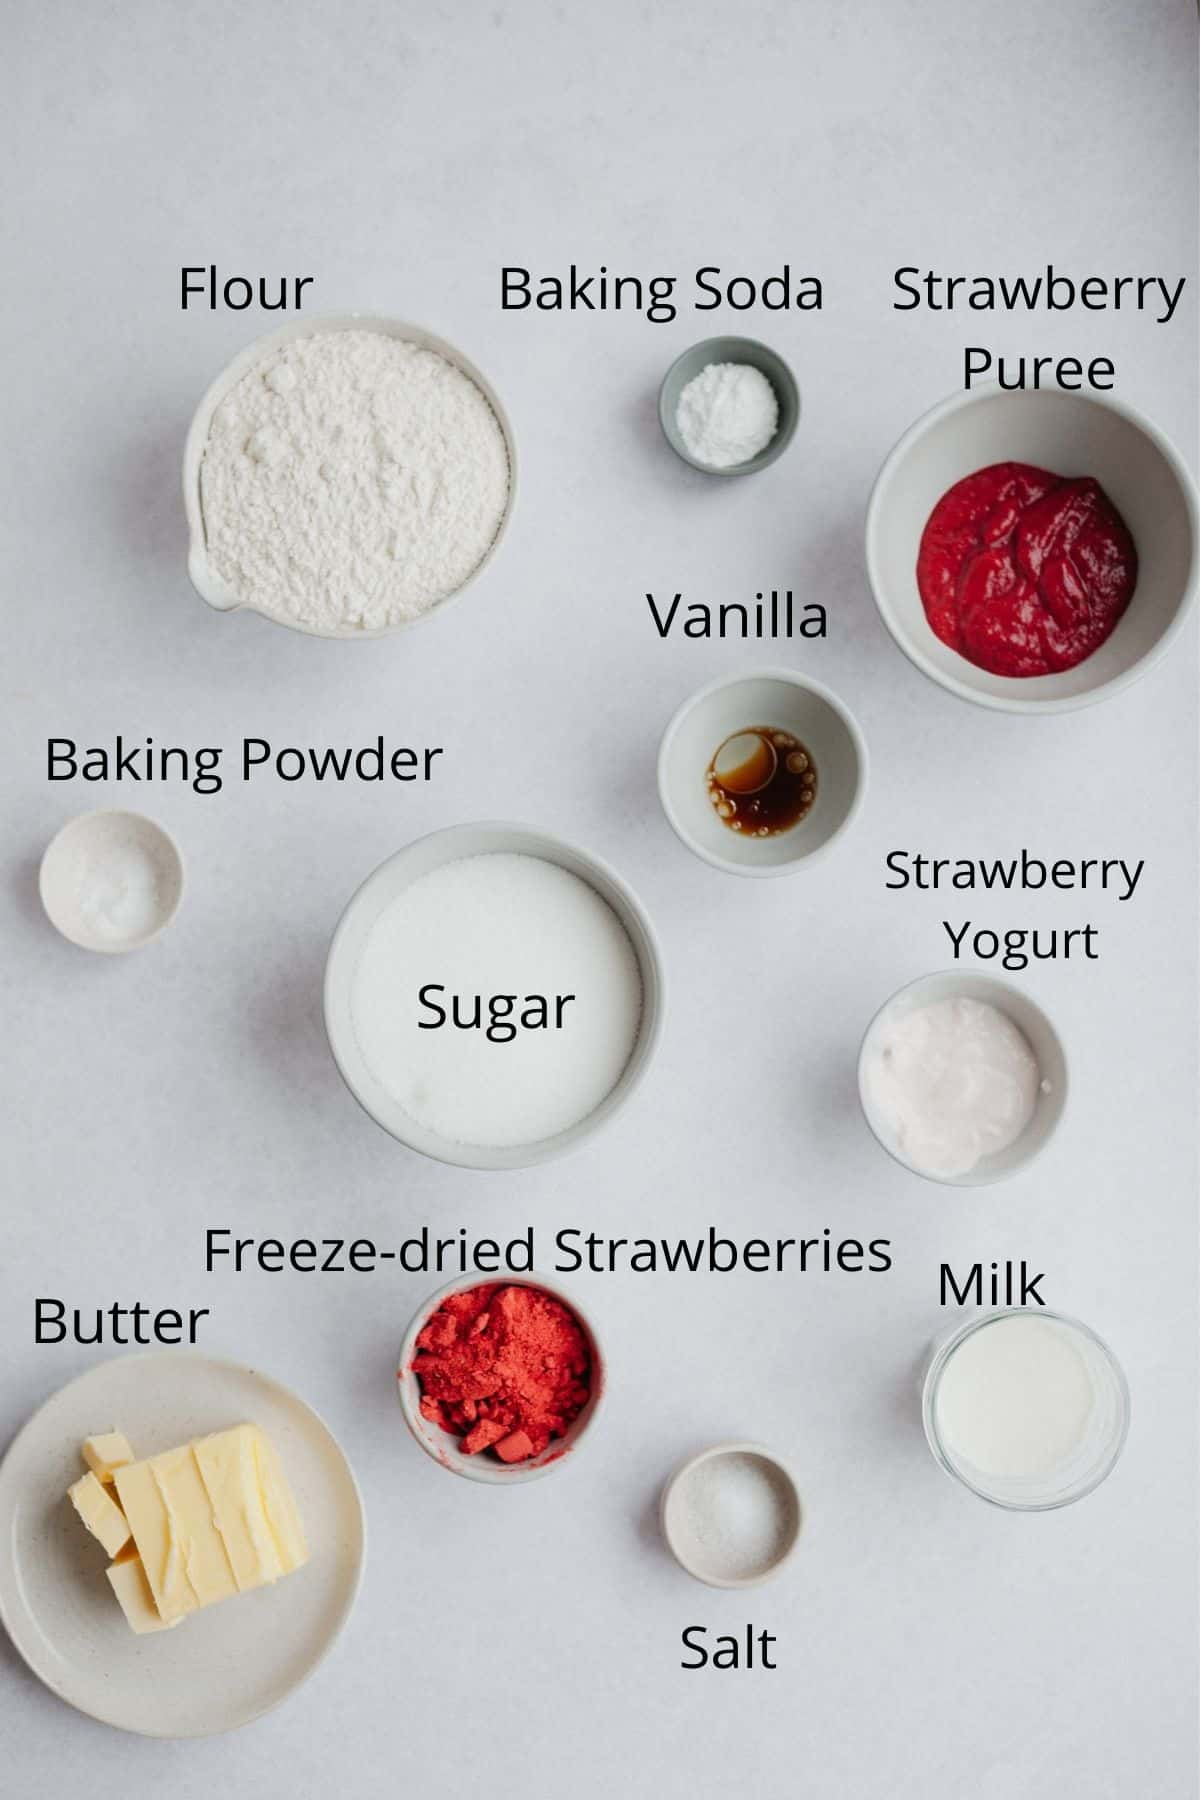 the ingredients needed for a strawberry layered cake